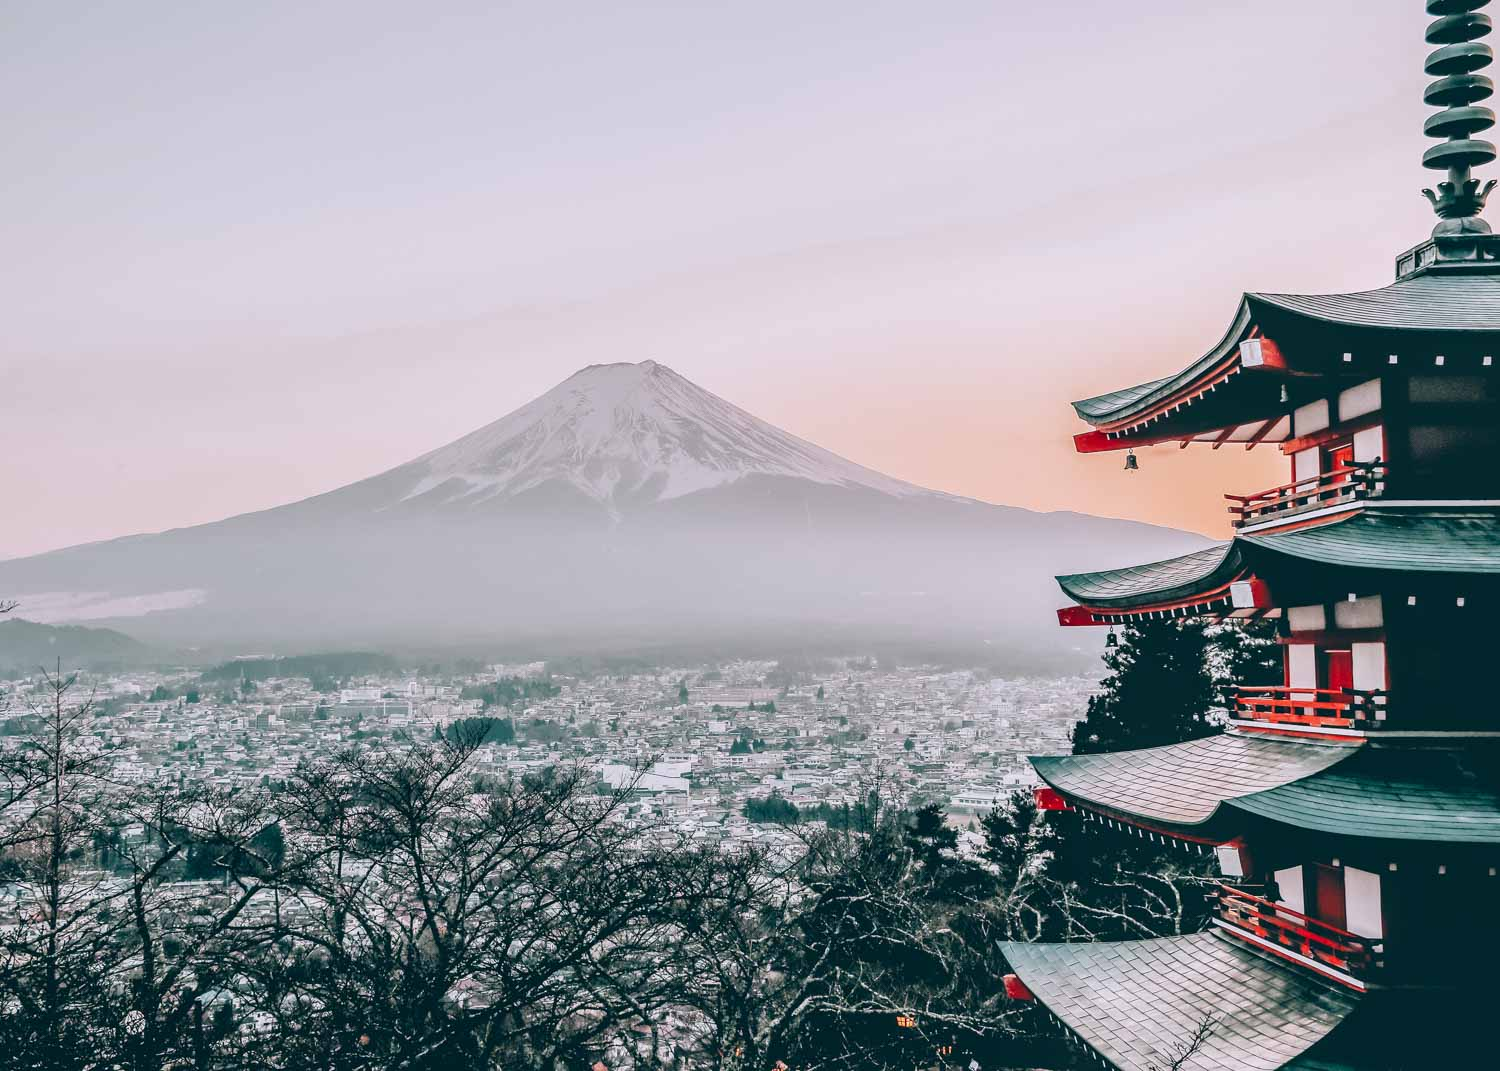 View of Mount Fuji in Japan with city below